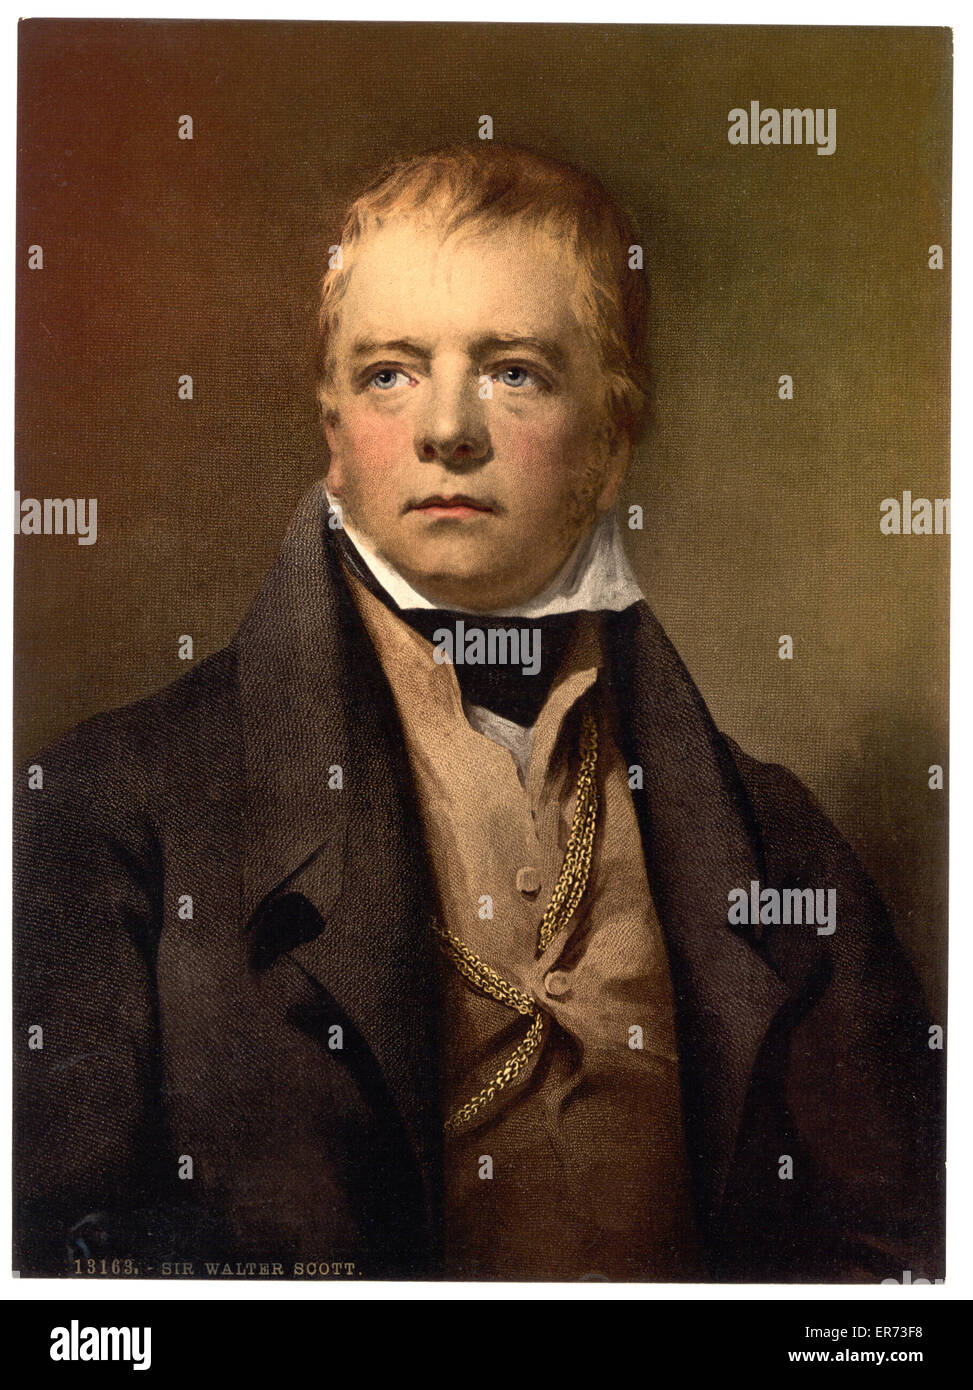 Portrait of Sir Walter Scott - Stock Image